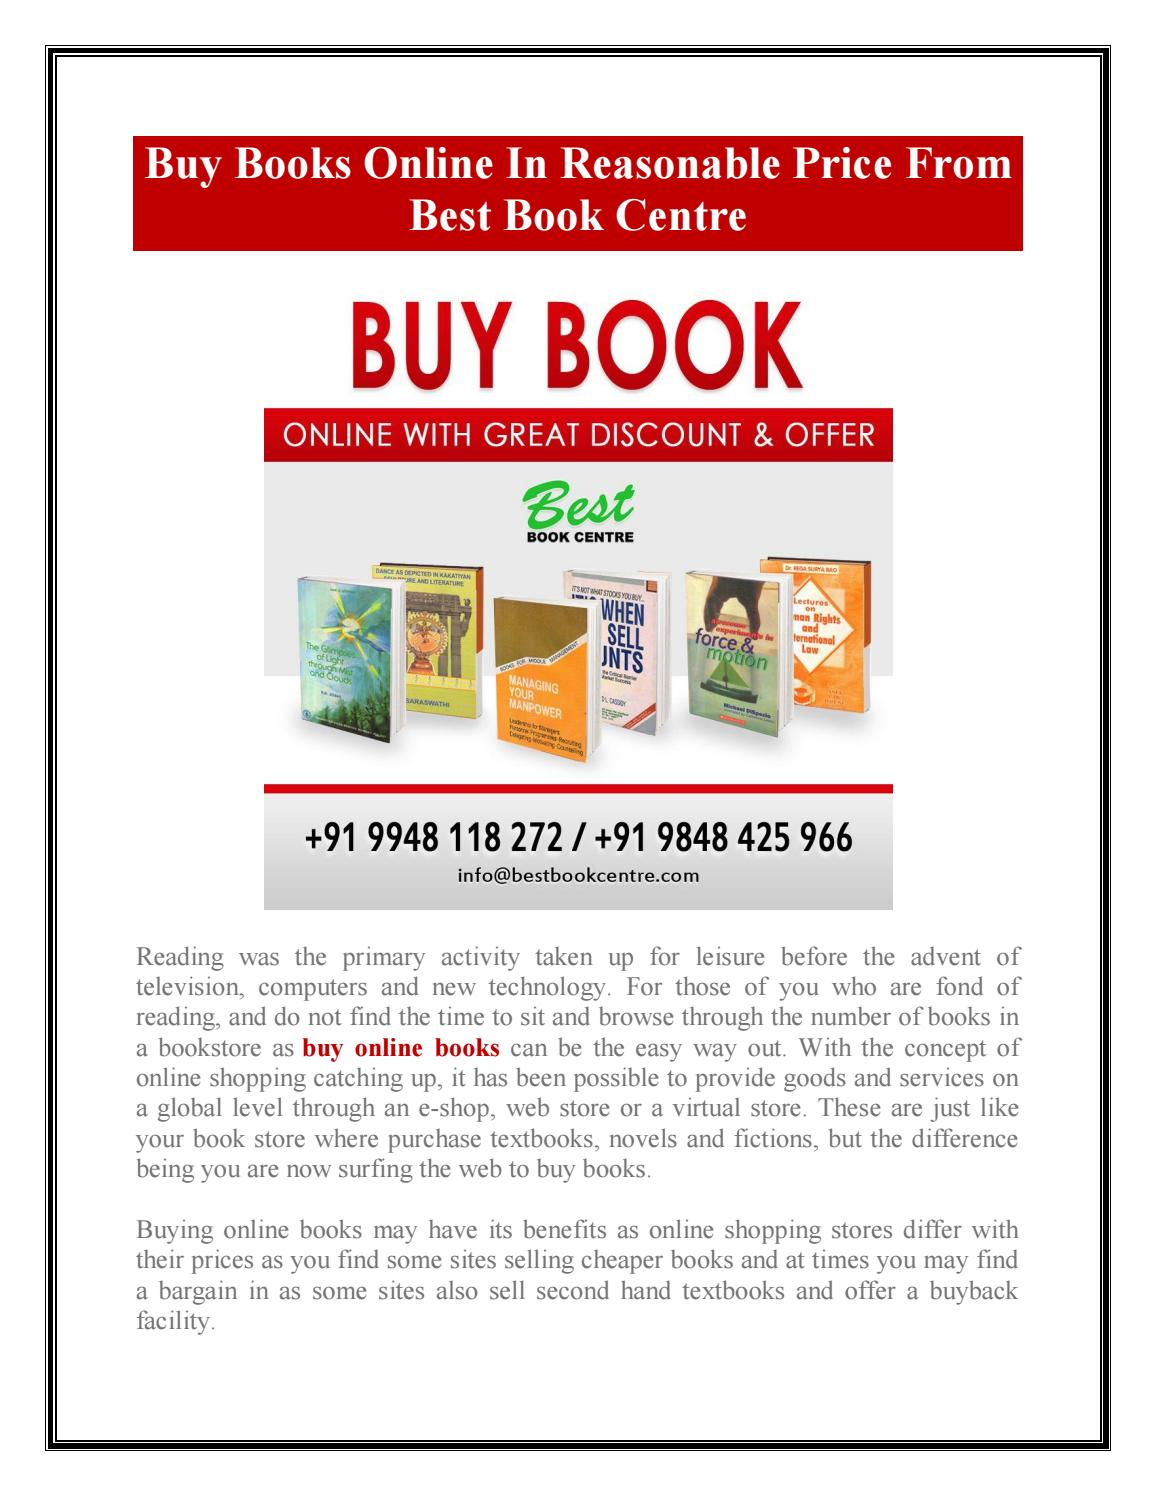 Buy Online Books by Best Book Centre - issuu